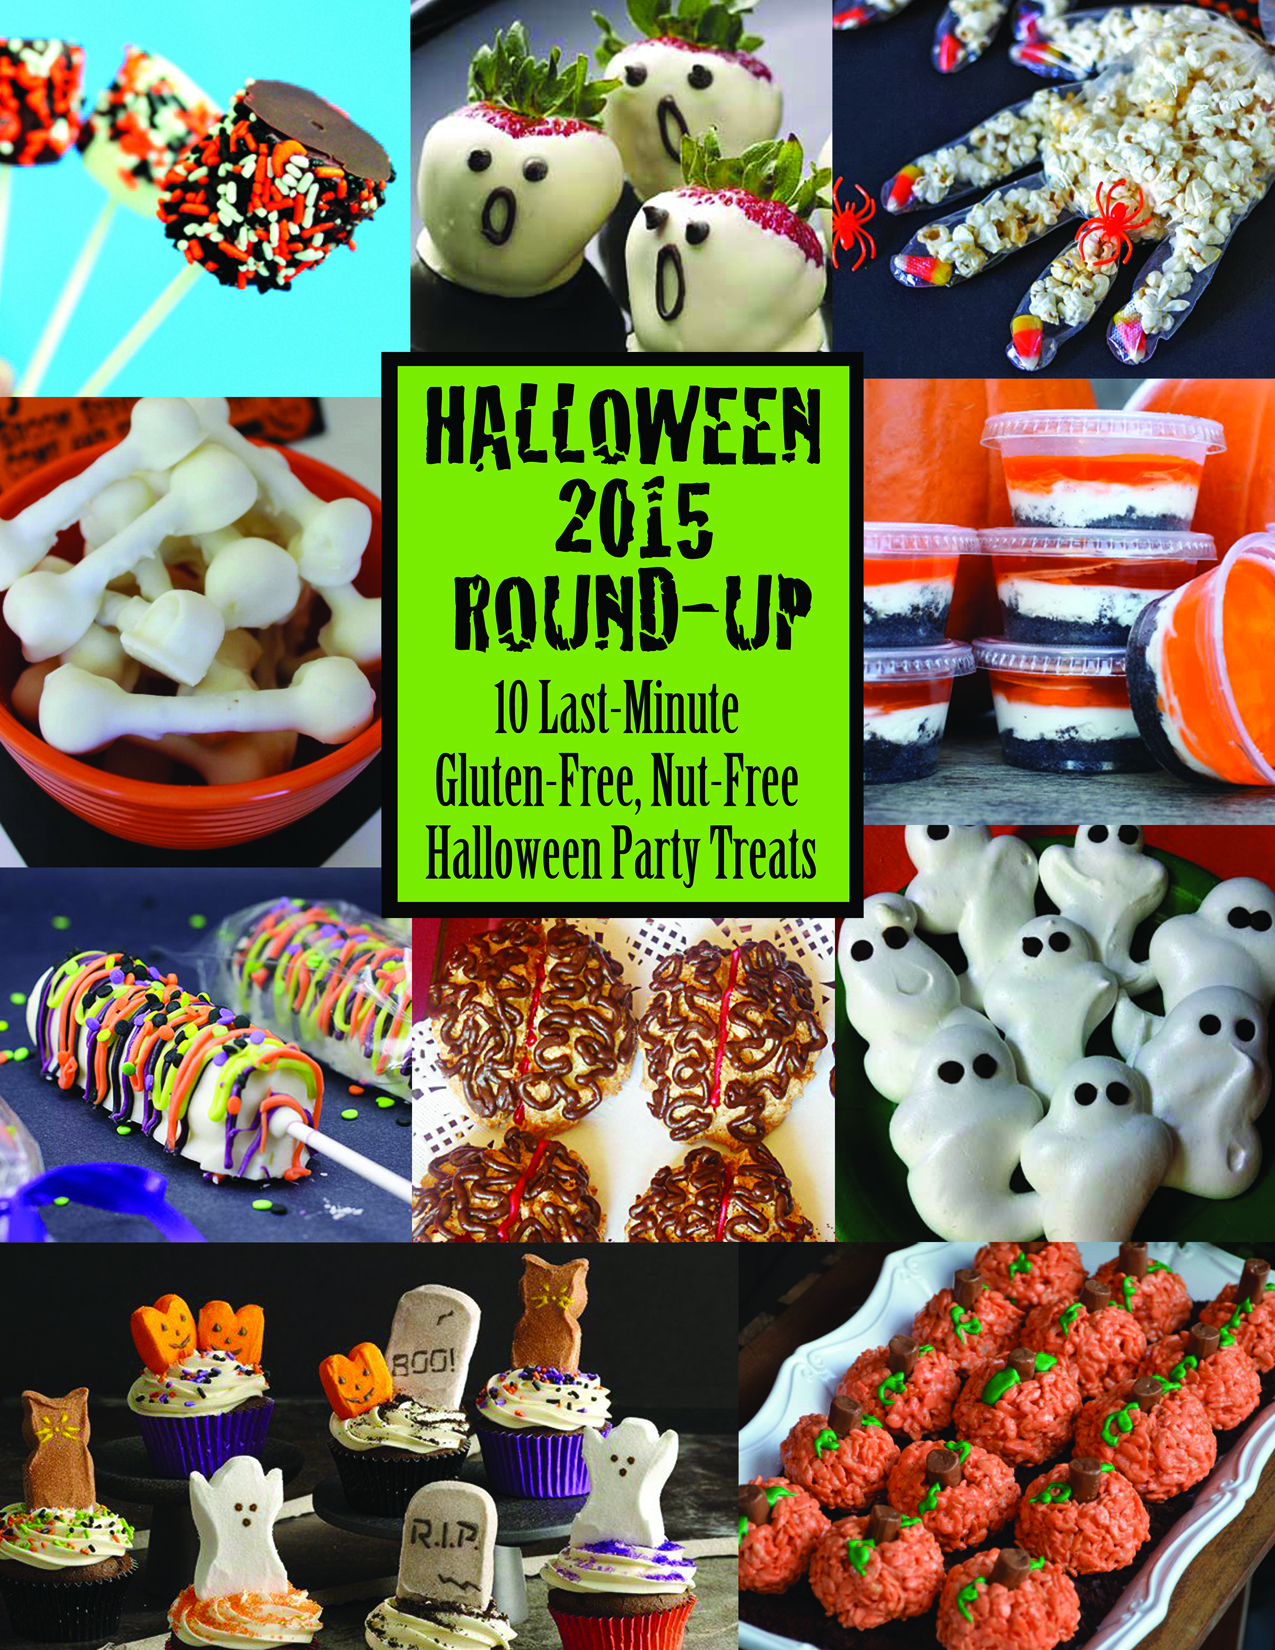 10 Last-Minute, Gluten-Free, Nut-Free Halloween Party Treats | g ...